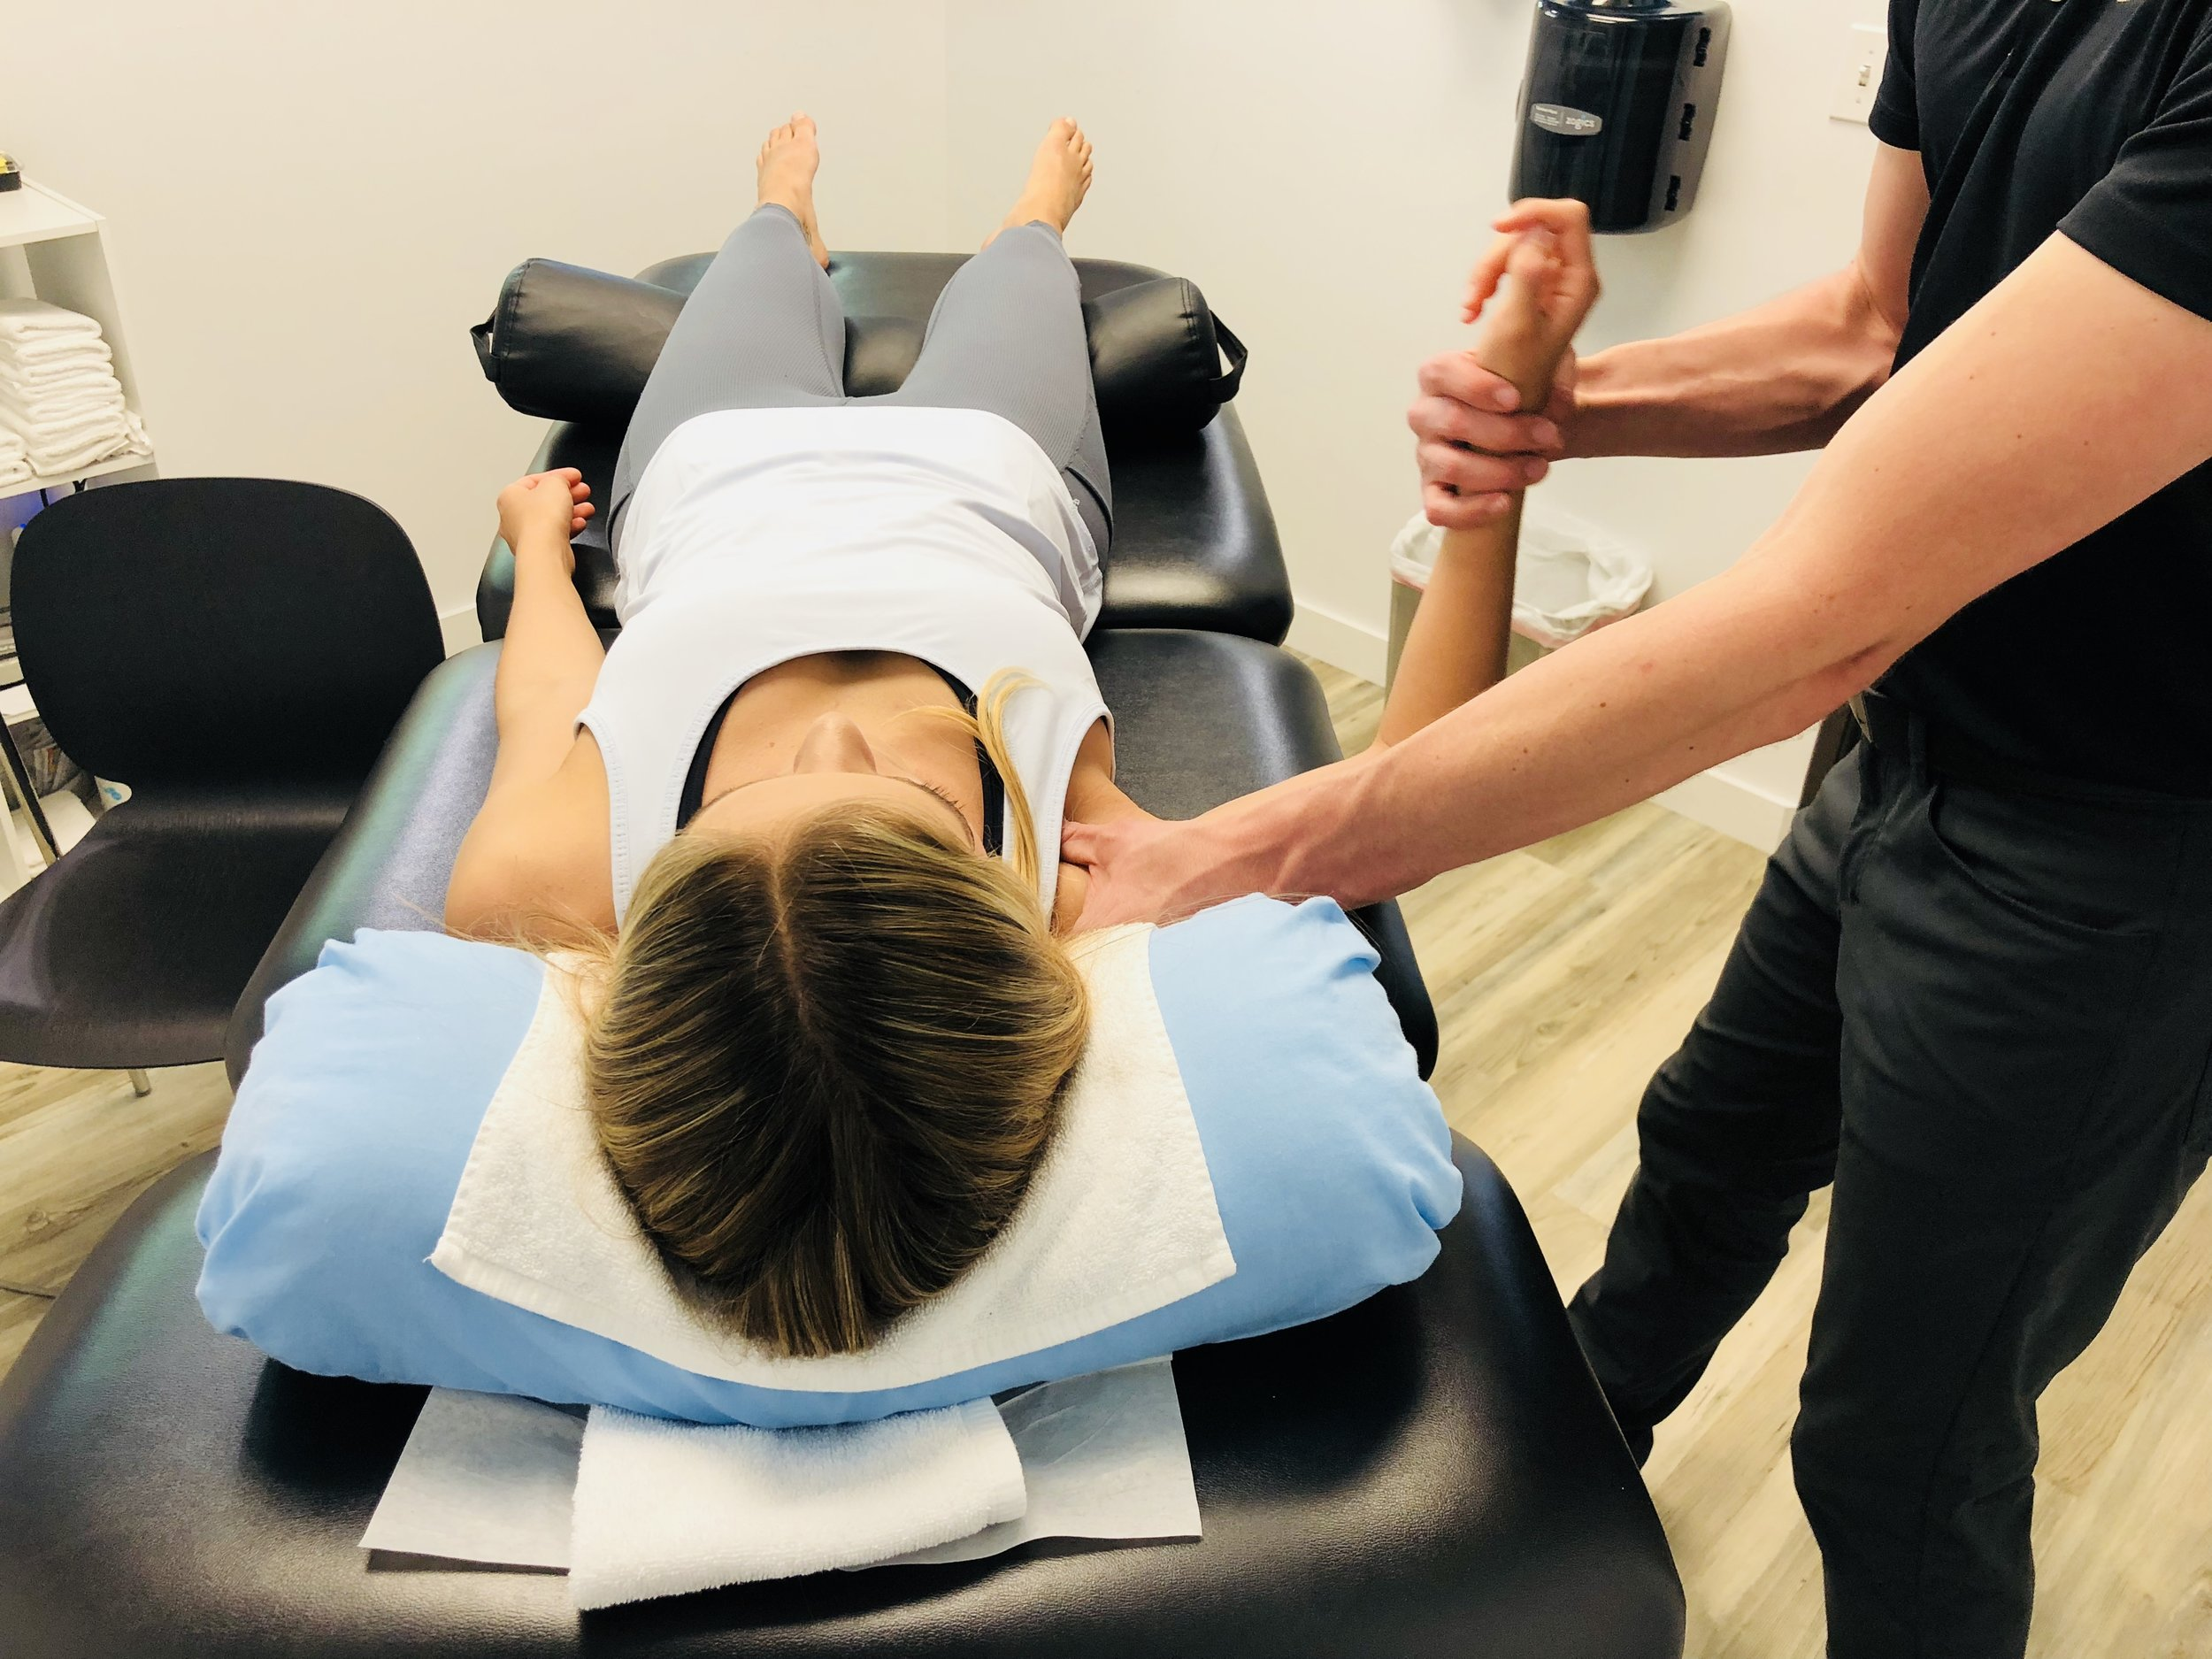 Typical Licenses to Perform Manual Therapy Include Physical Therapy, Chiropractic, and Massage Therapy